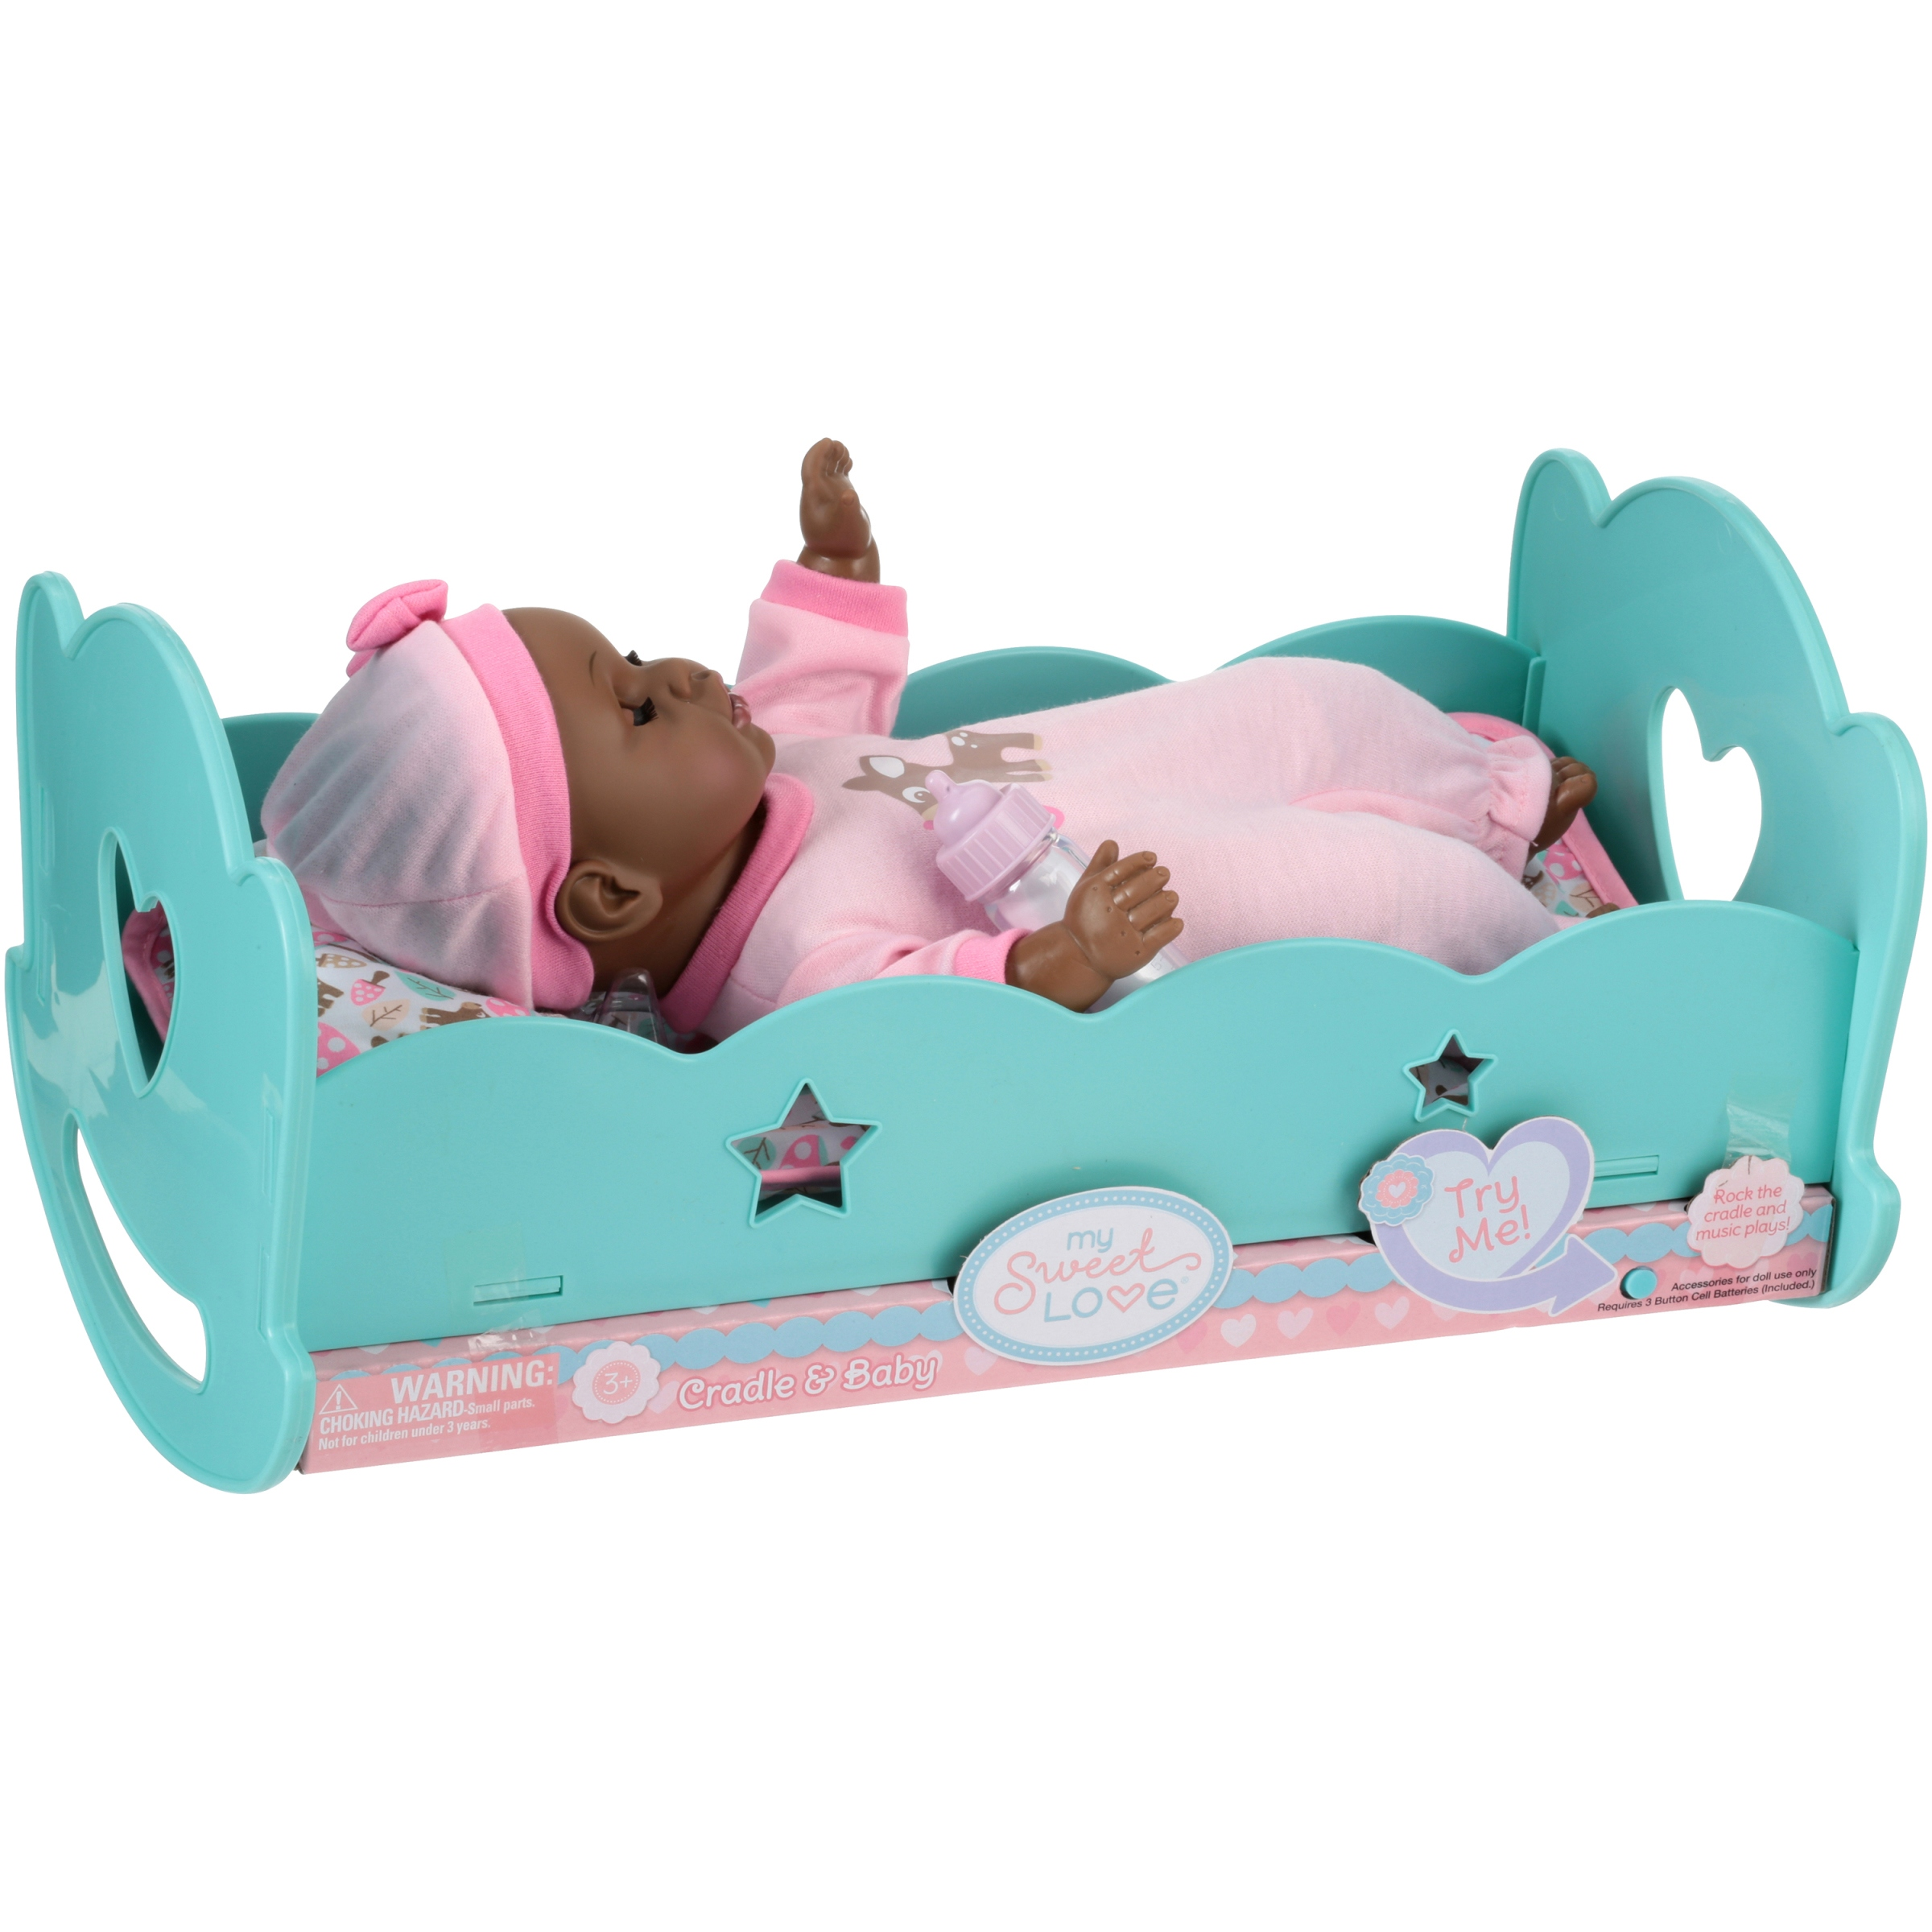 My Sweet Love® Cradle & Baby 3 pc Box